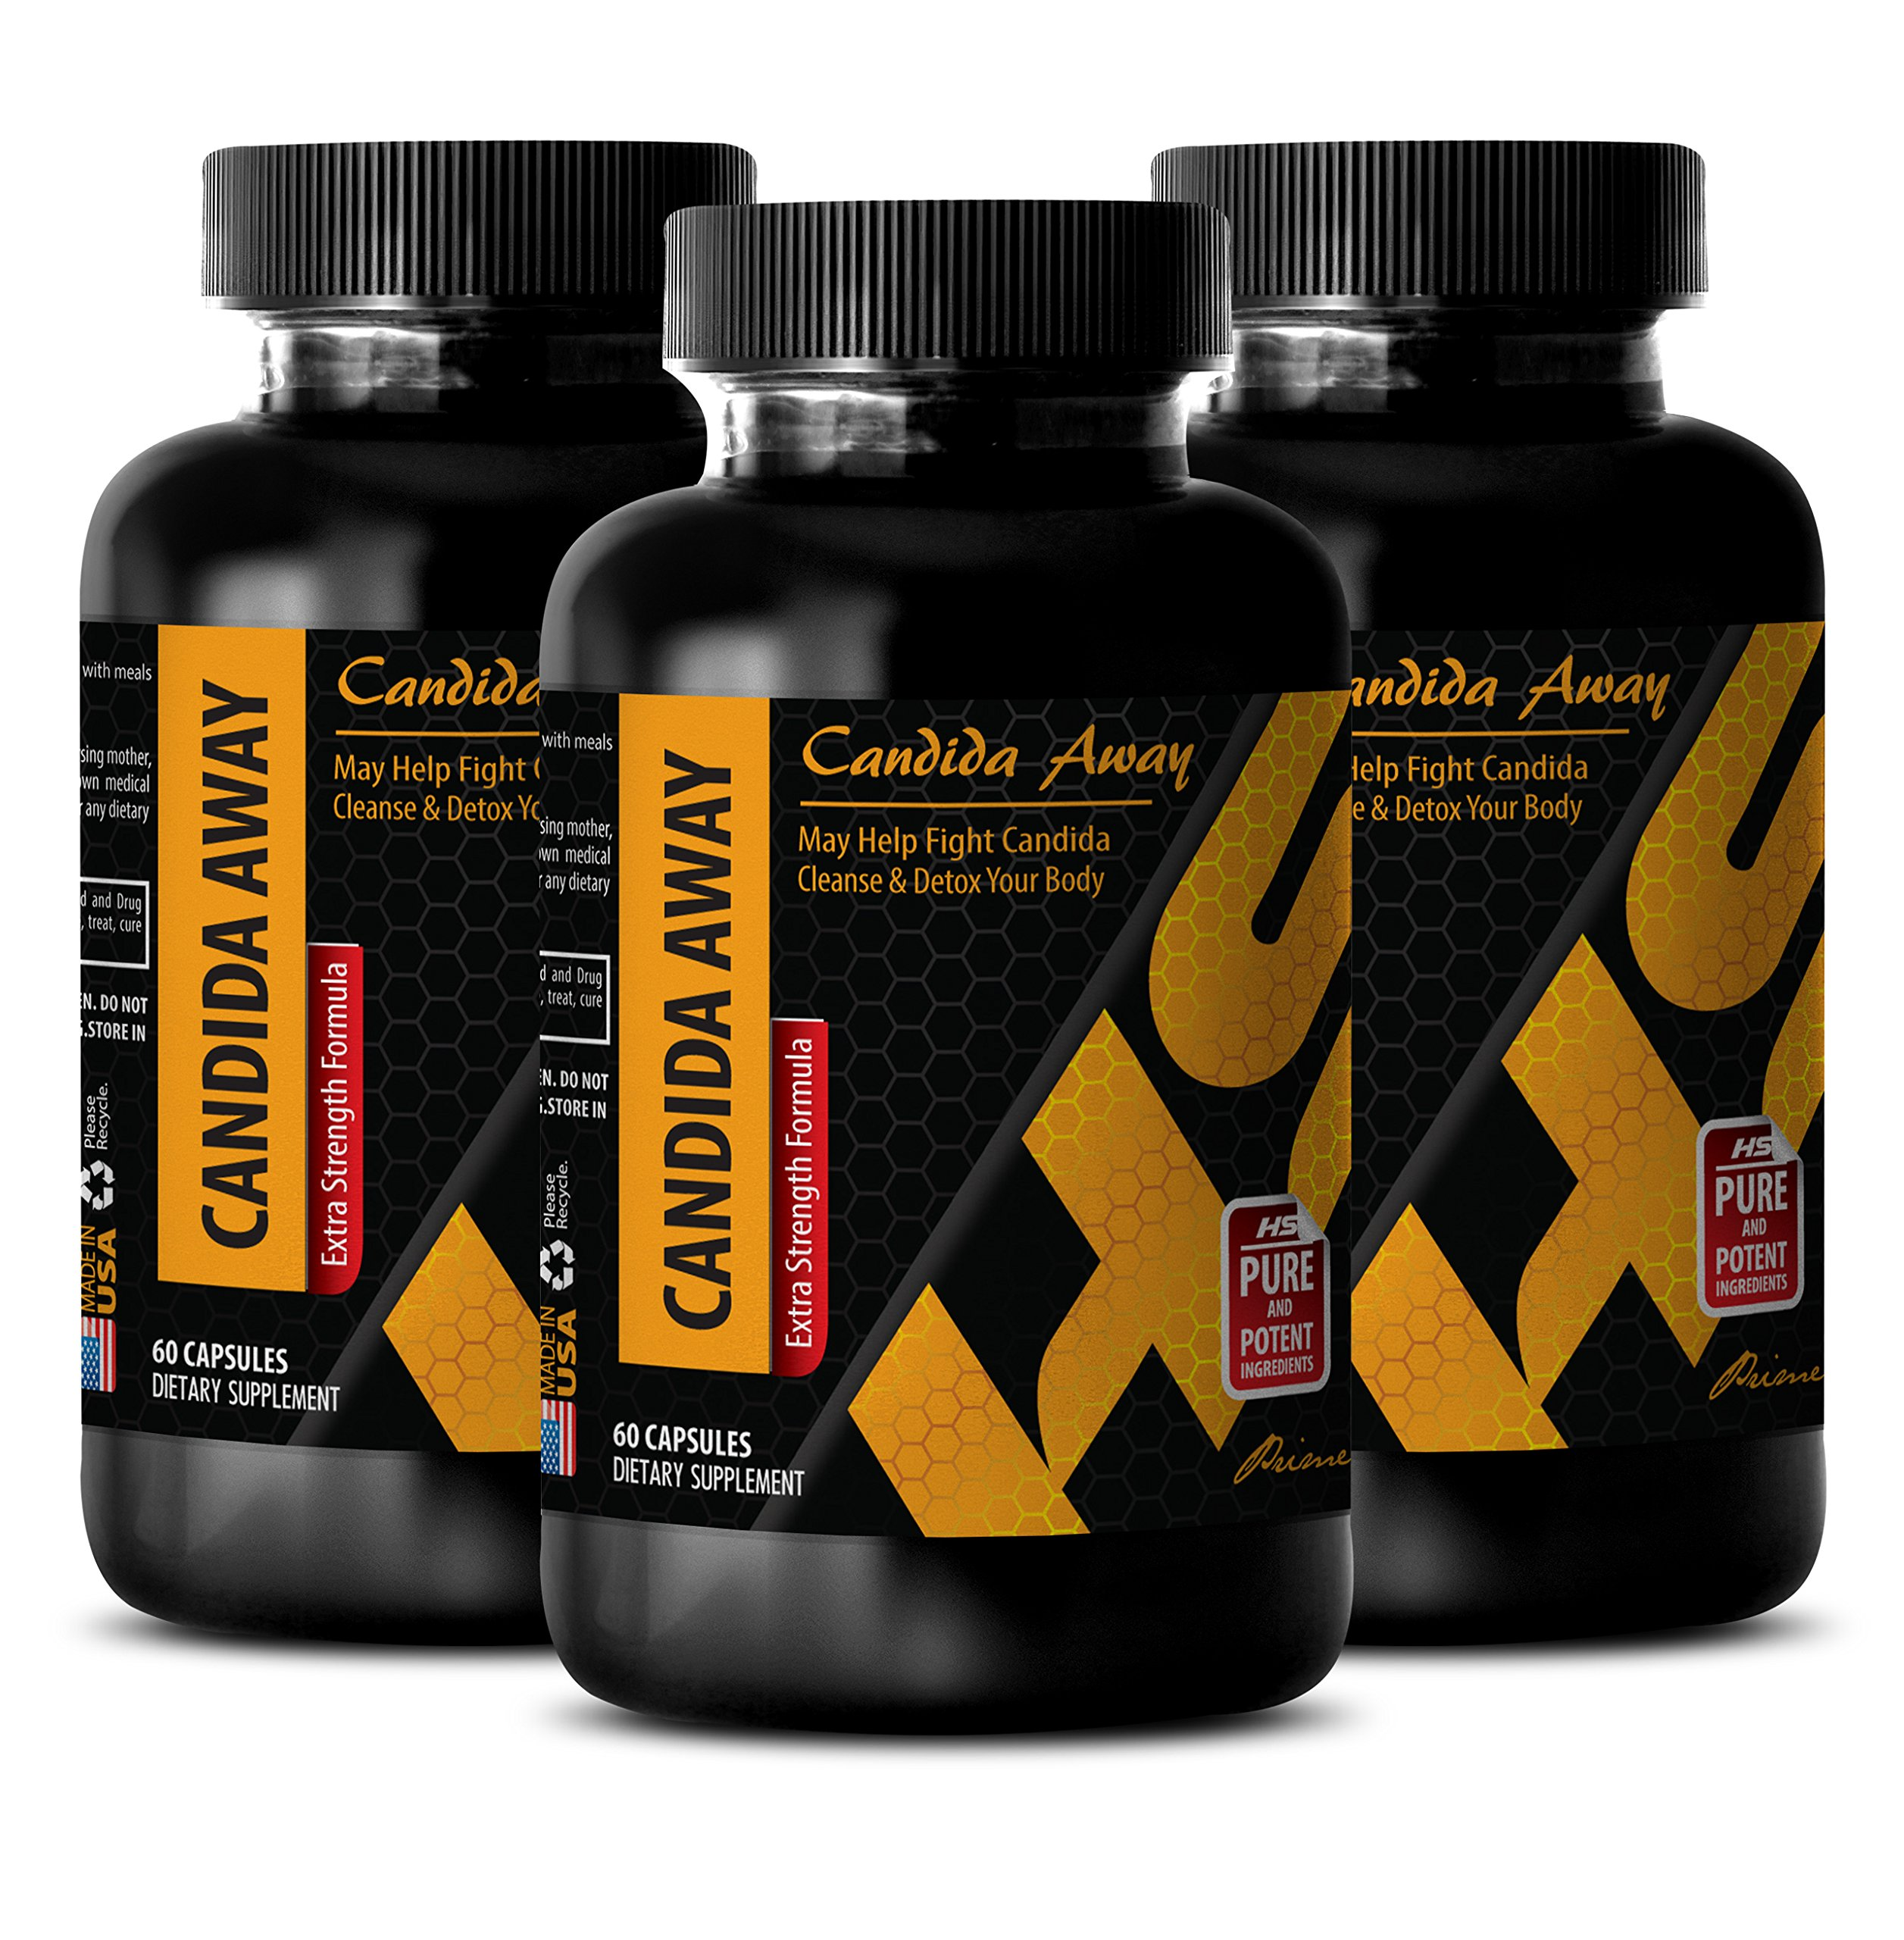 metabolism diet - CANDIDA AWAY - candida pills - 3 Bottles (180 Capsules) by HS PRIME